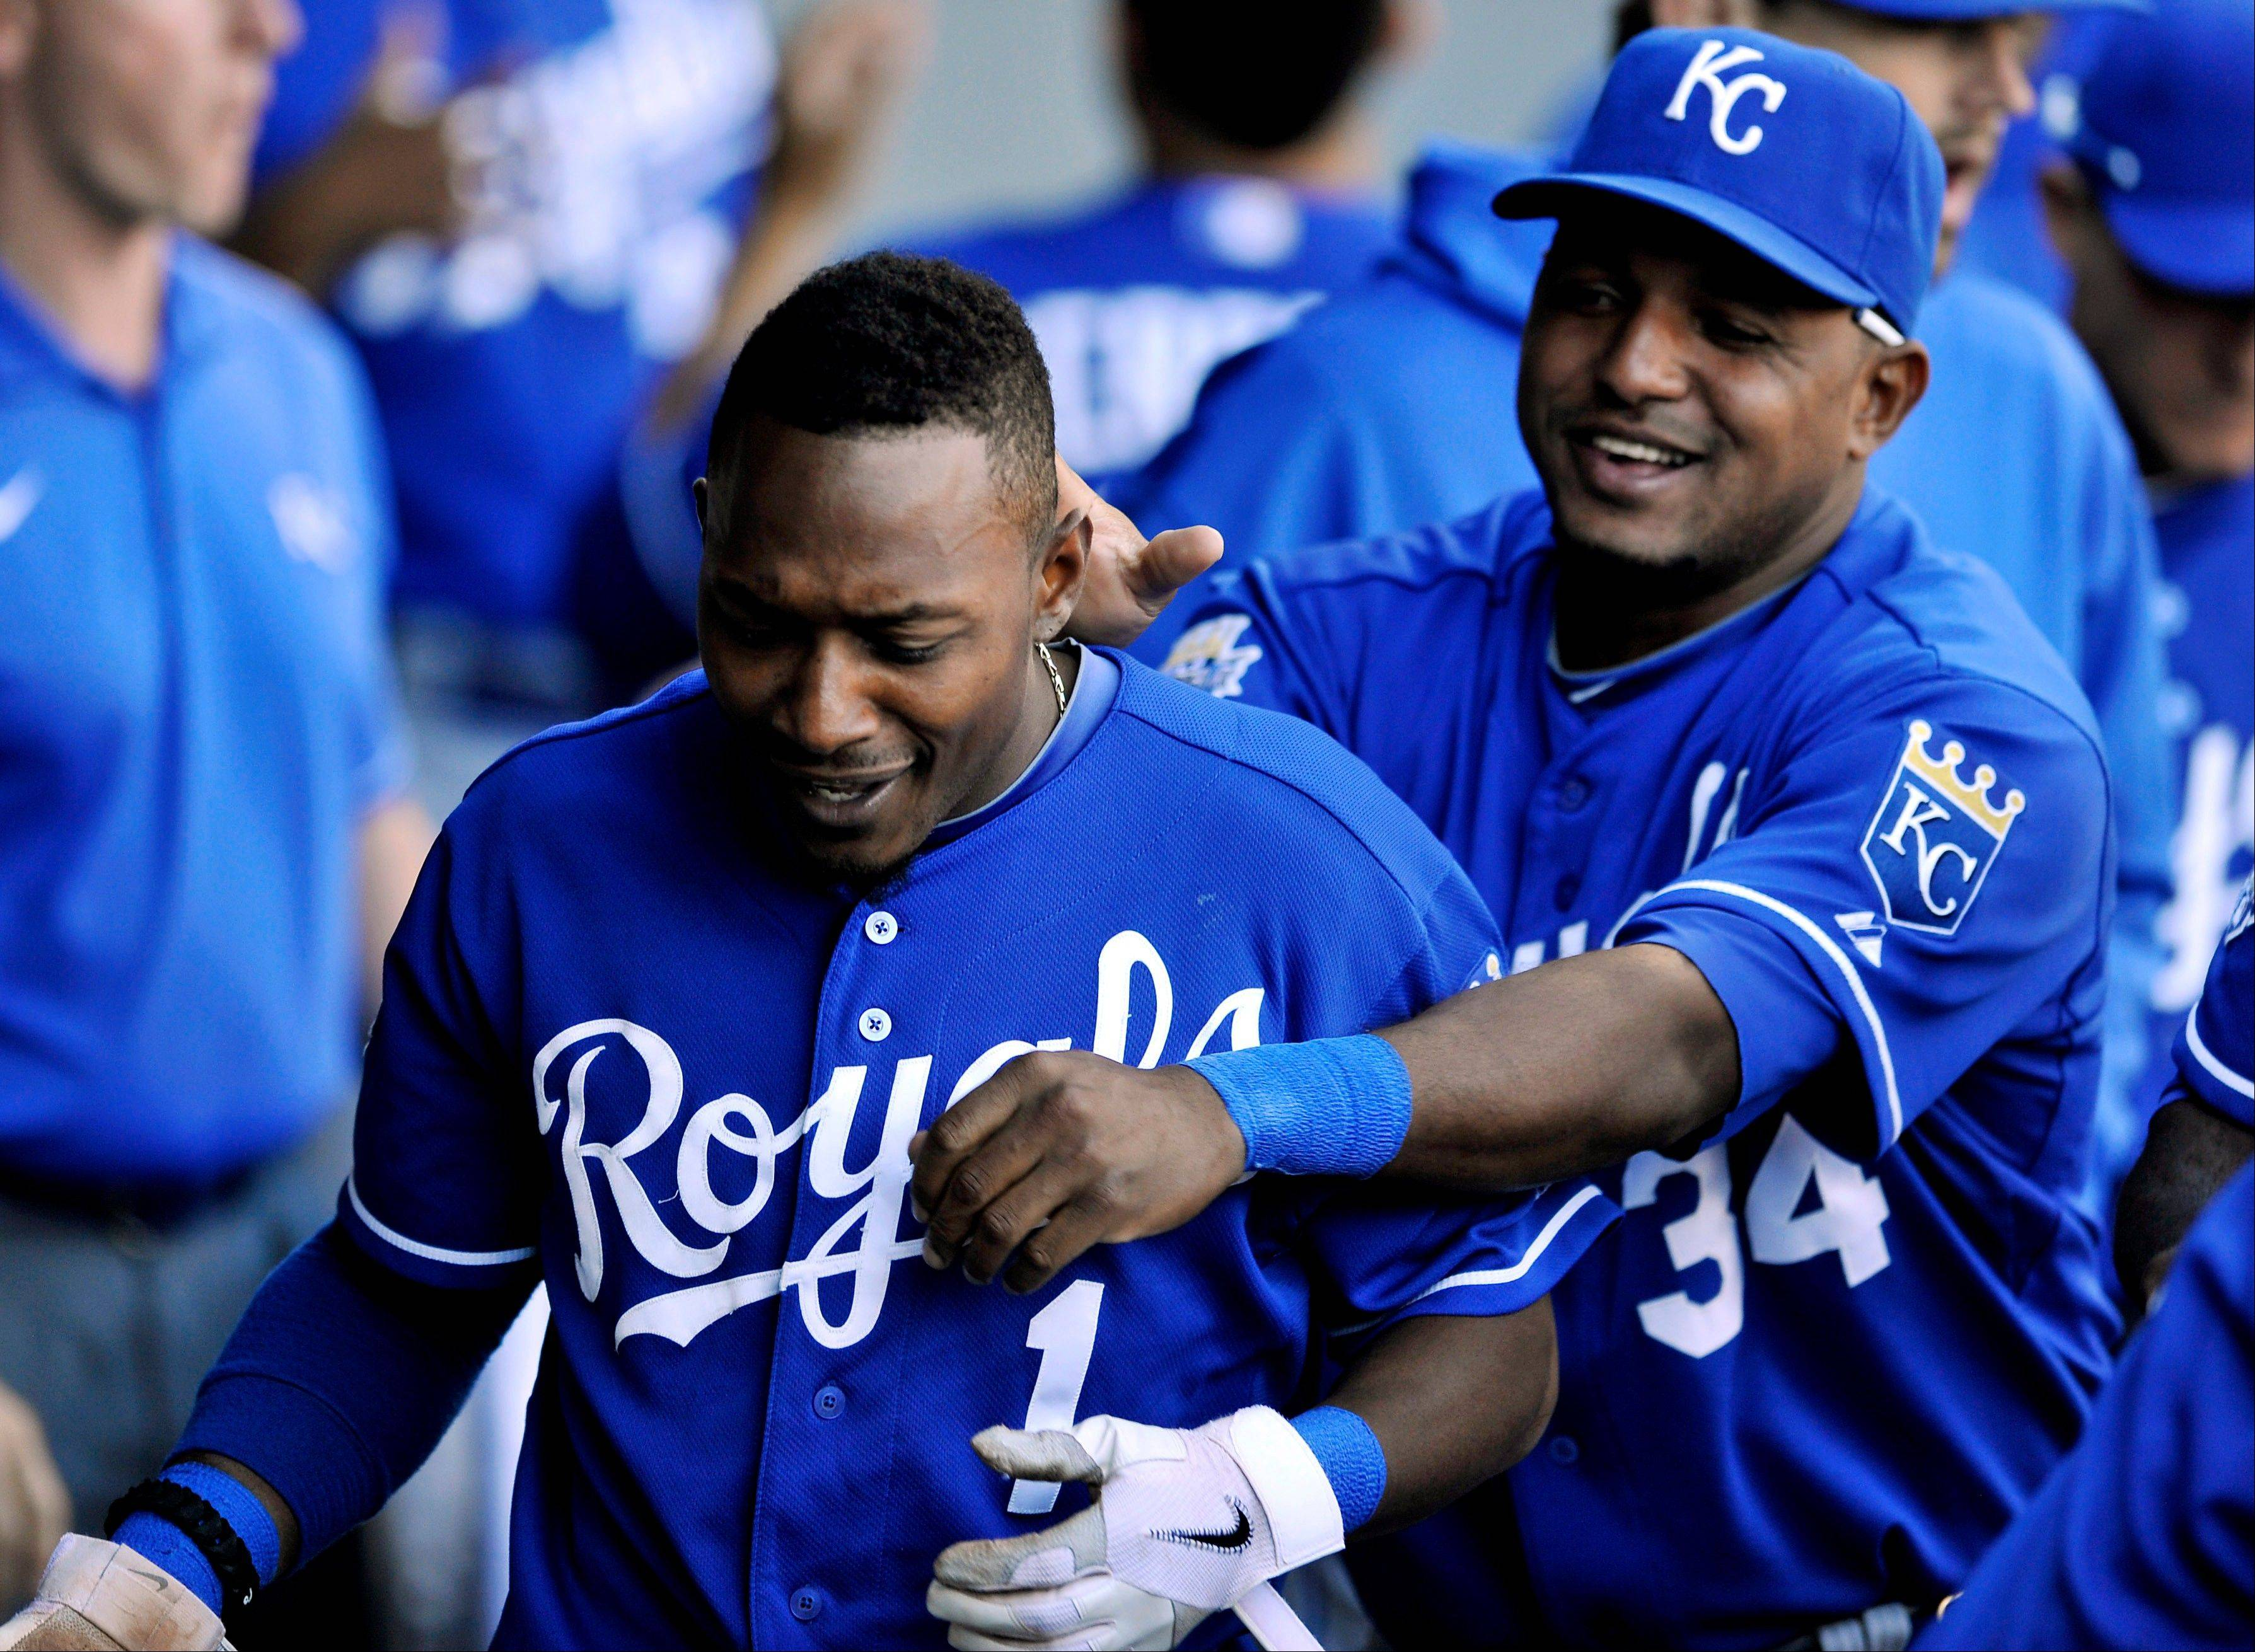 Kansas City Royals' Jarrod Dyson left, celebrates with Tony Abreu right, in the dugout after scoring on a single hit by Mike Moustakas in the 10th inning during a baseball game against the Chicago White Sox in Chicago, Sunday, Sept. 9, 2012. Kansas City won 2-1 in ten innings.